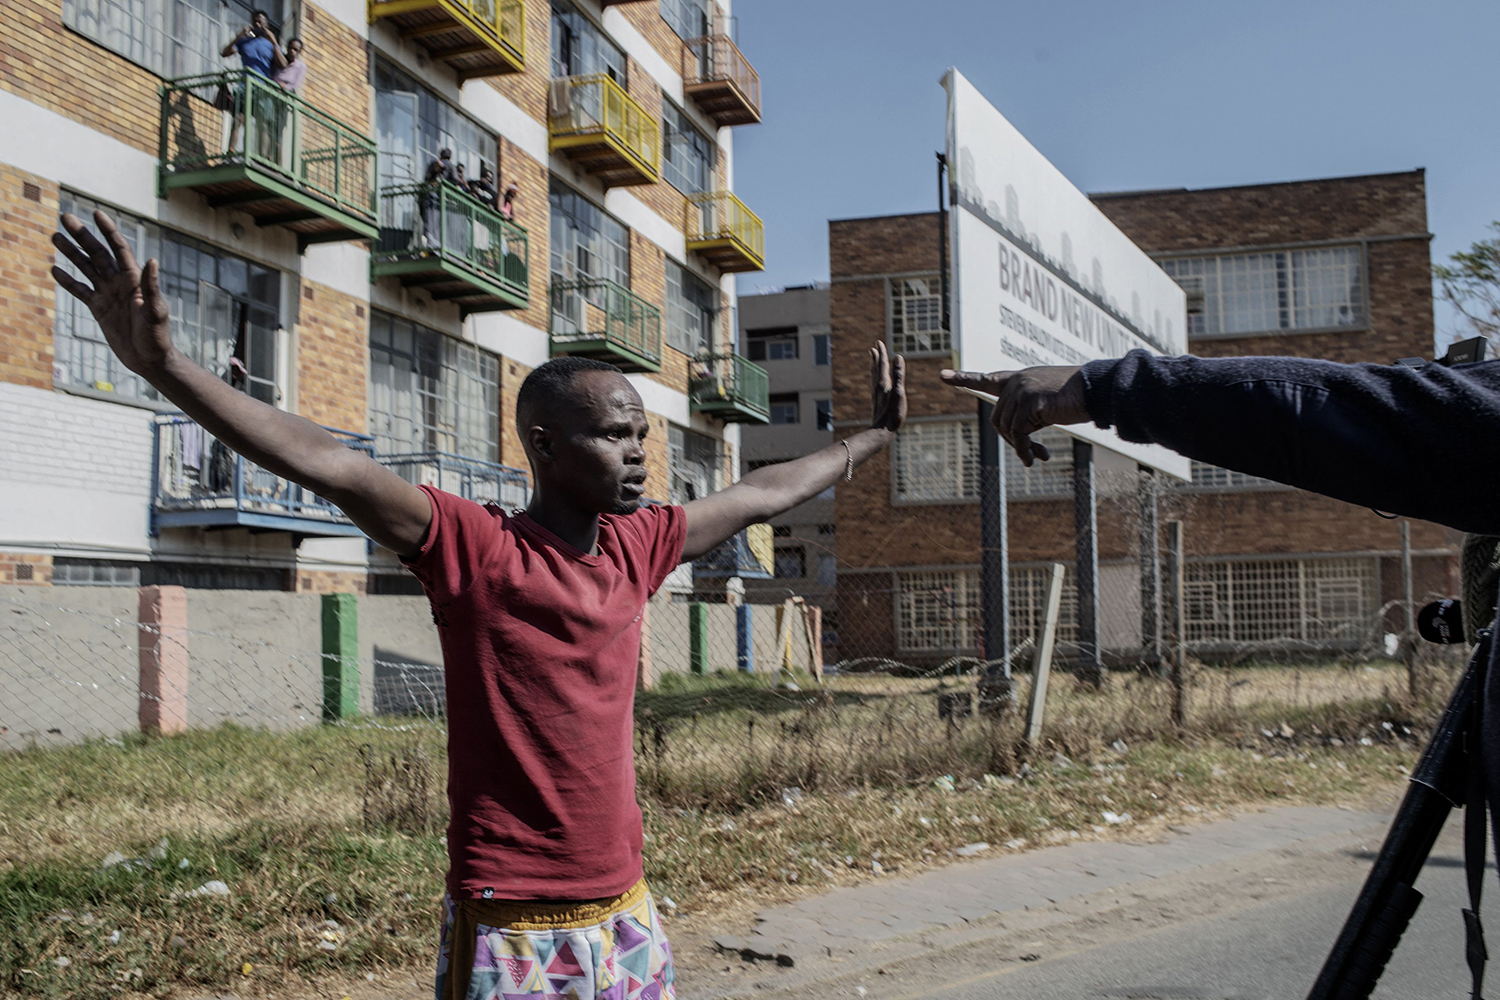 Protester raises hands against South Africa police